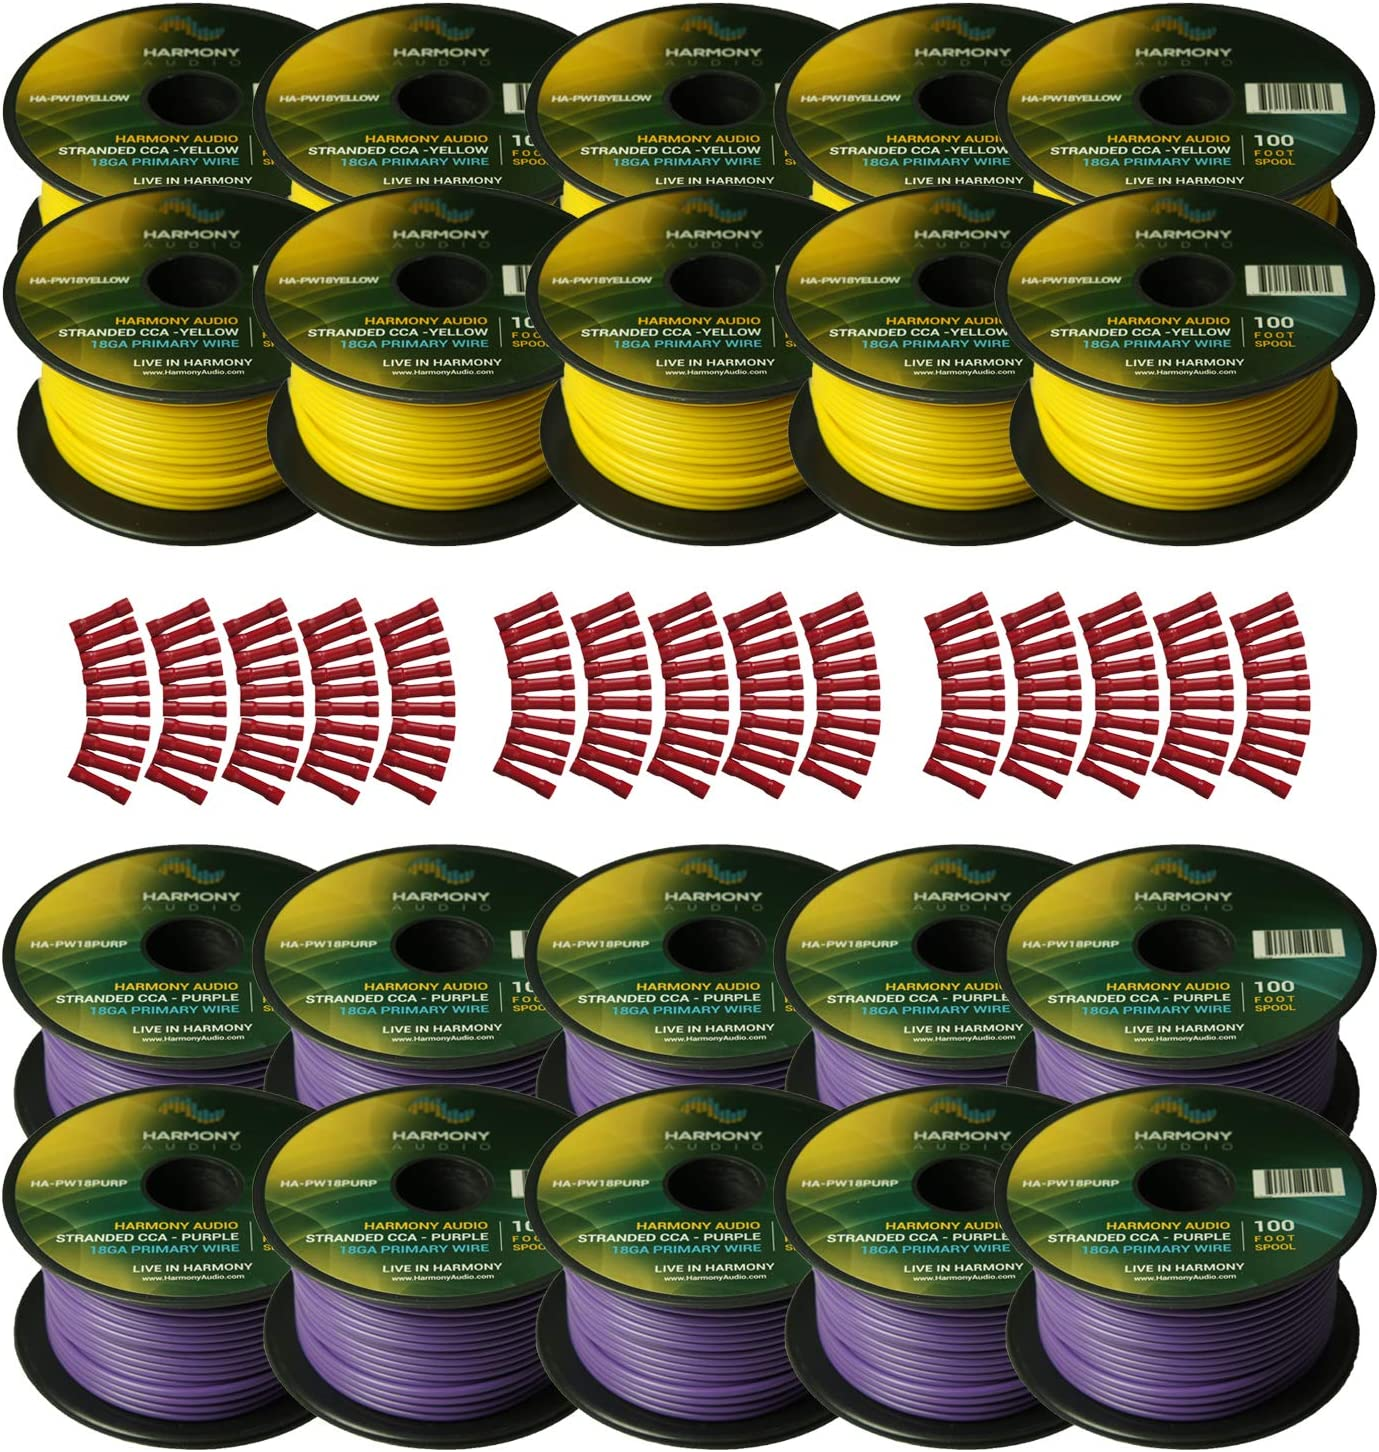 Harmony Audio Primary Single Conductor 18 Gauge Power or Ground Wire - 20 Rolls - 2000 Feet - Yellow & Purple for Car Audio/Trailer/Model Train/Remote 81OIZ1tkVXLSL1500_